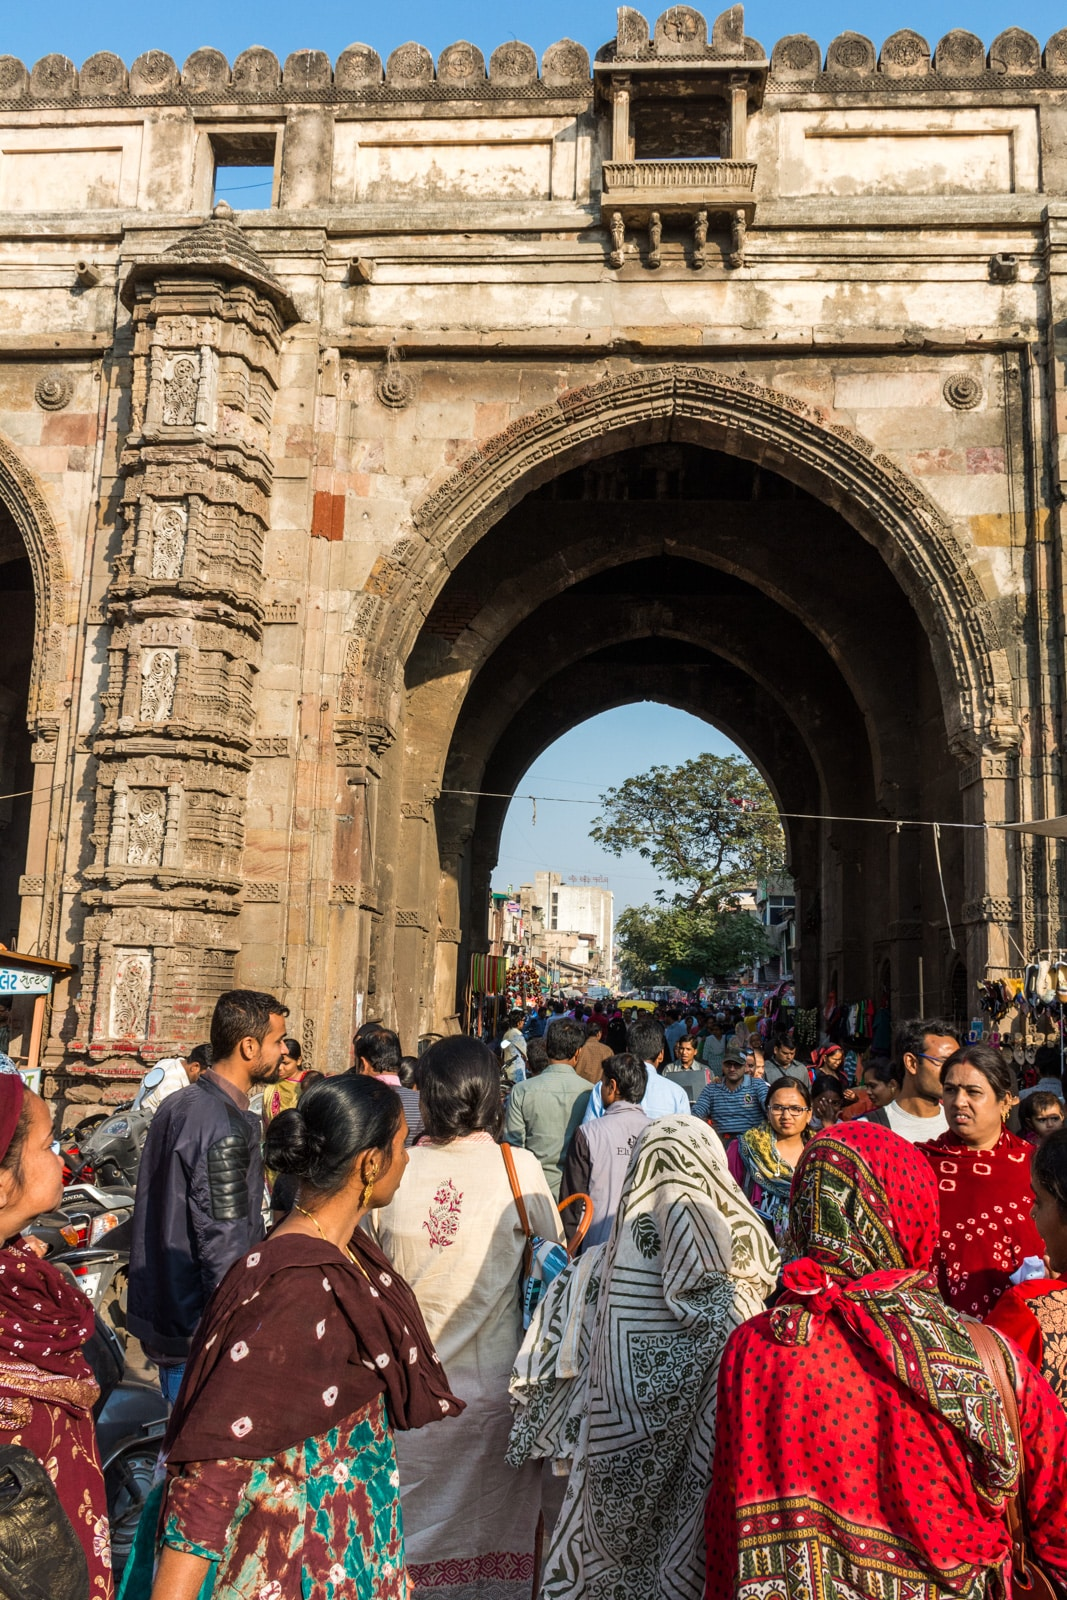 A busy crowd walks through an ornate stone archway over a market street in Ahmedabad